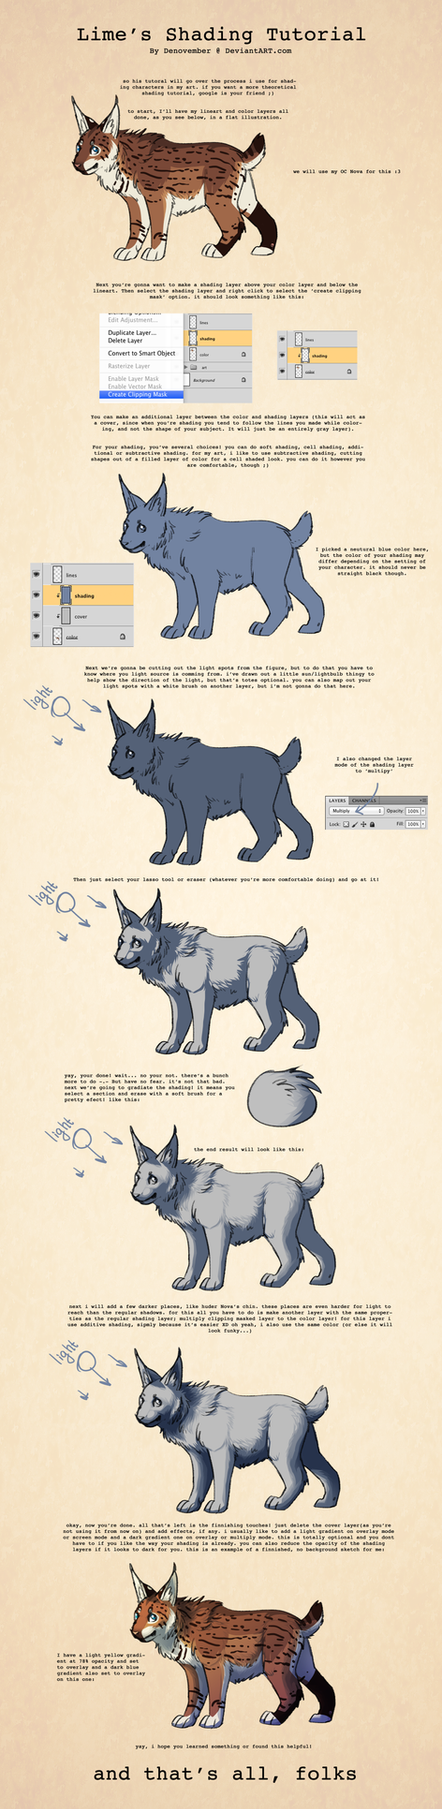 Shading Style Tutorial by Liimesquares